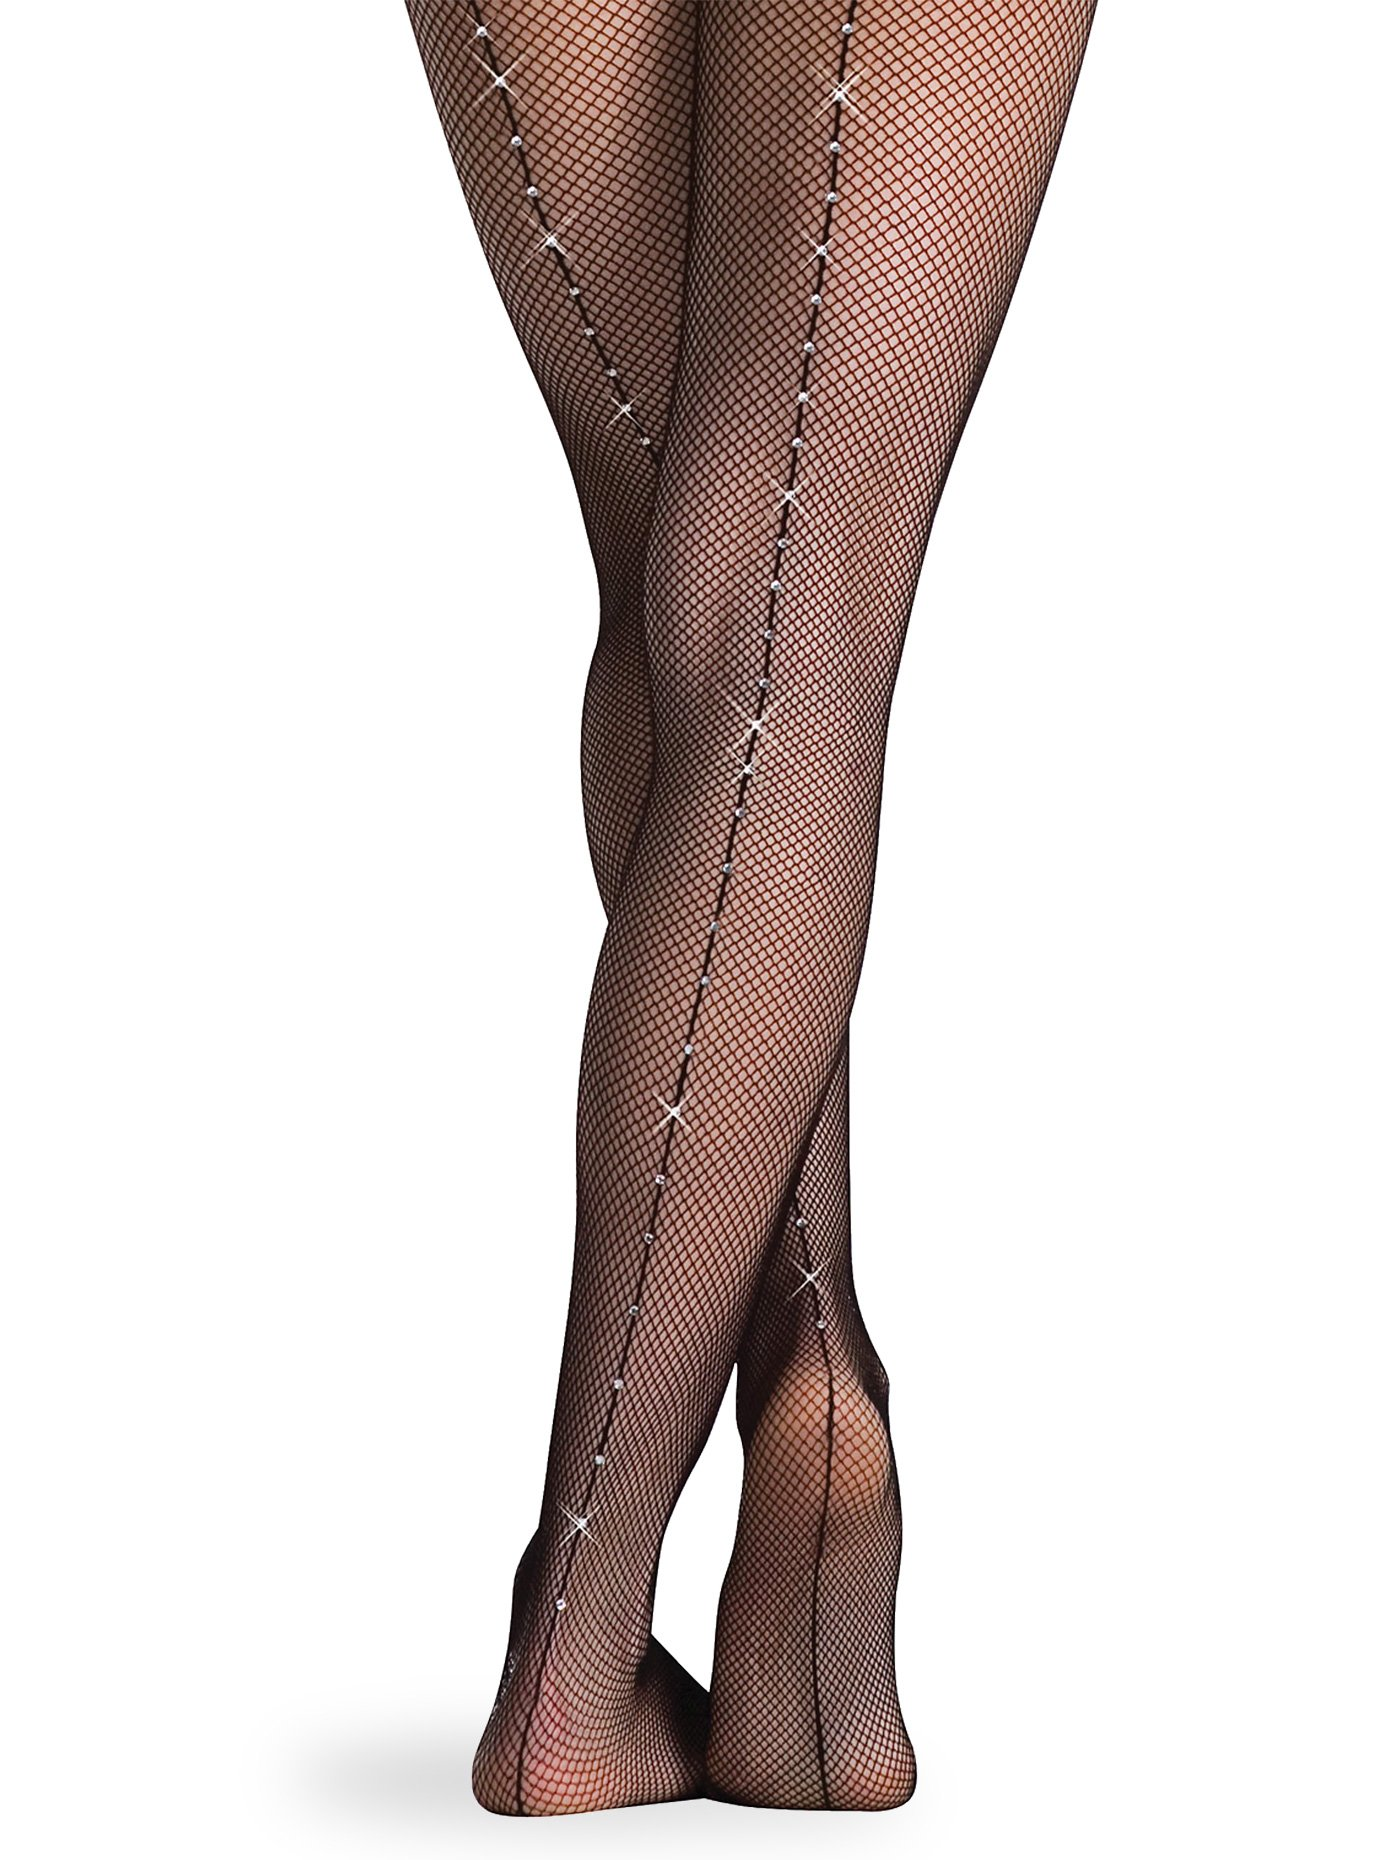 Body Wrappers C64 TotalSTRETCH Girls' Backseam Rhinestone Fishnet Tights (8-14, Black)